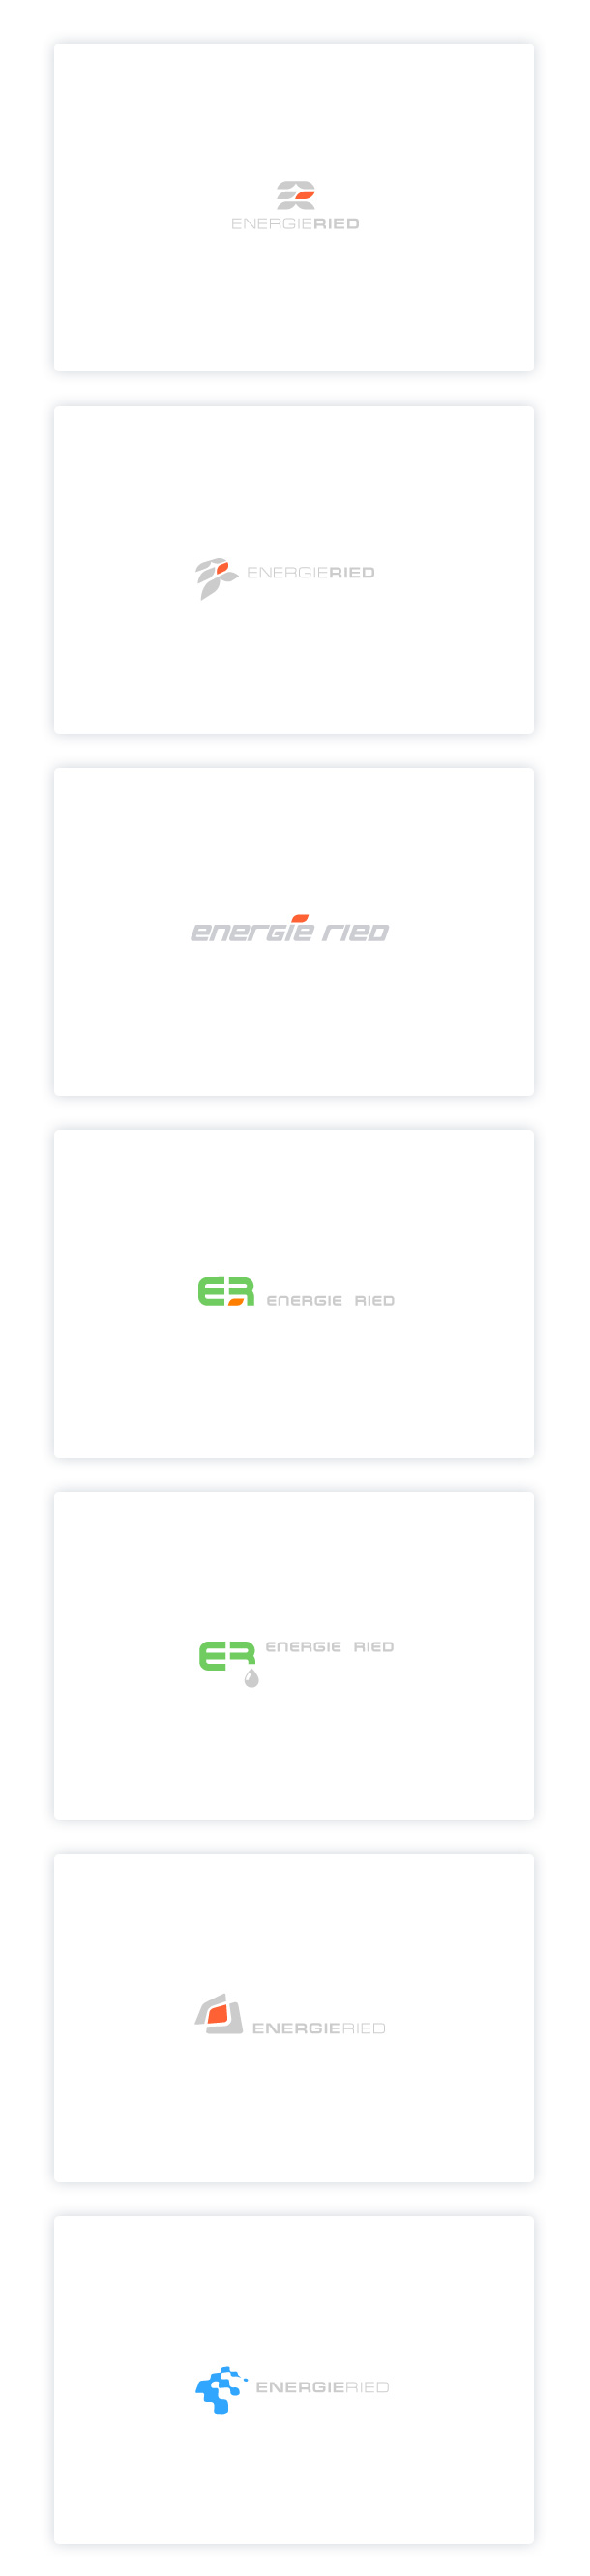 Energieried, other logo versions.